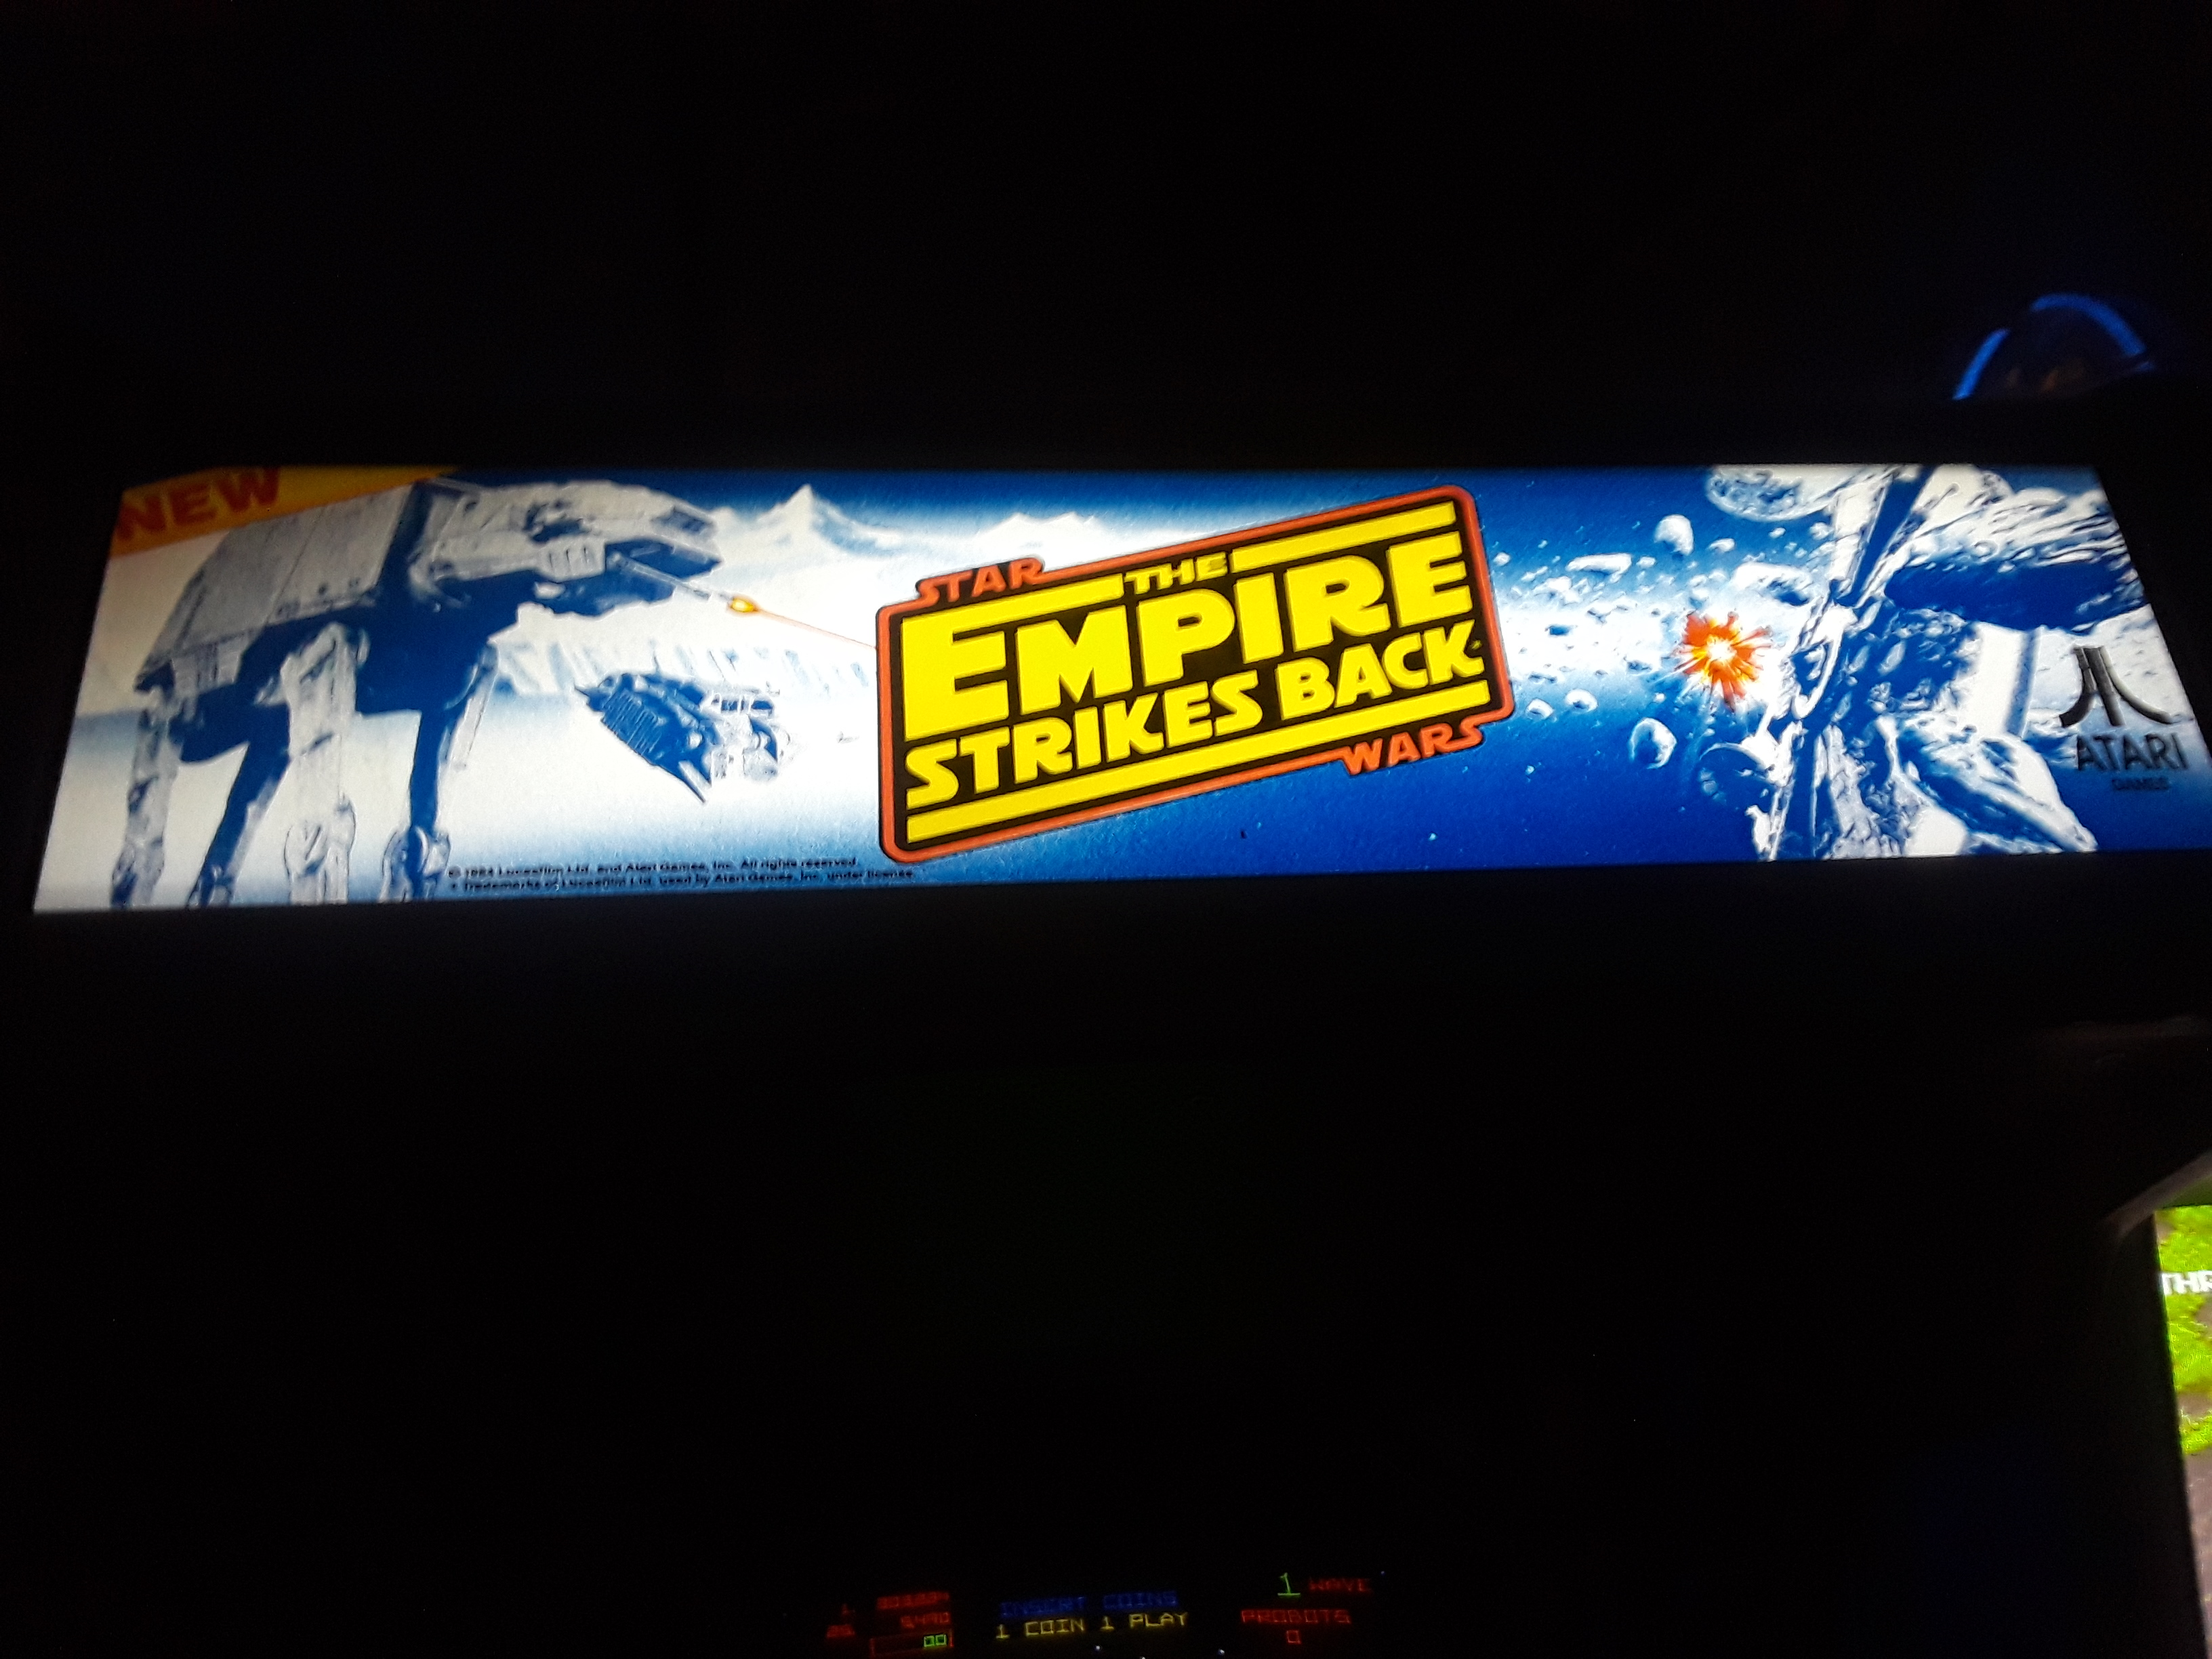 Star Wars: The Empire Strikes Back 18,959 points